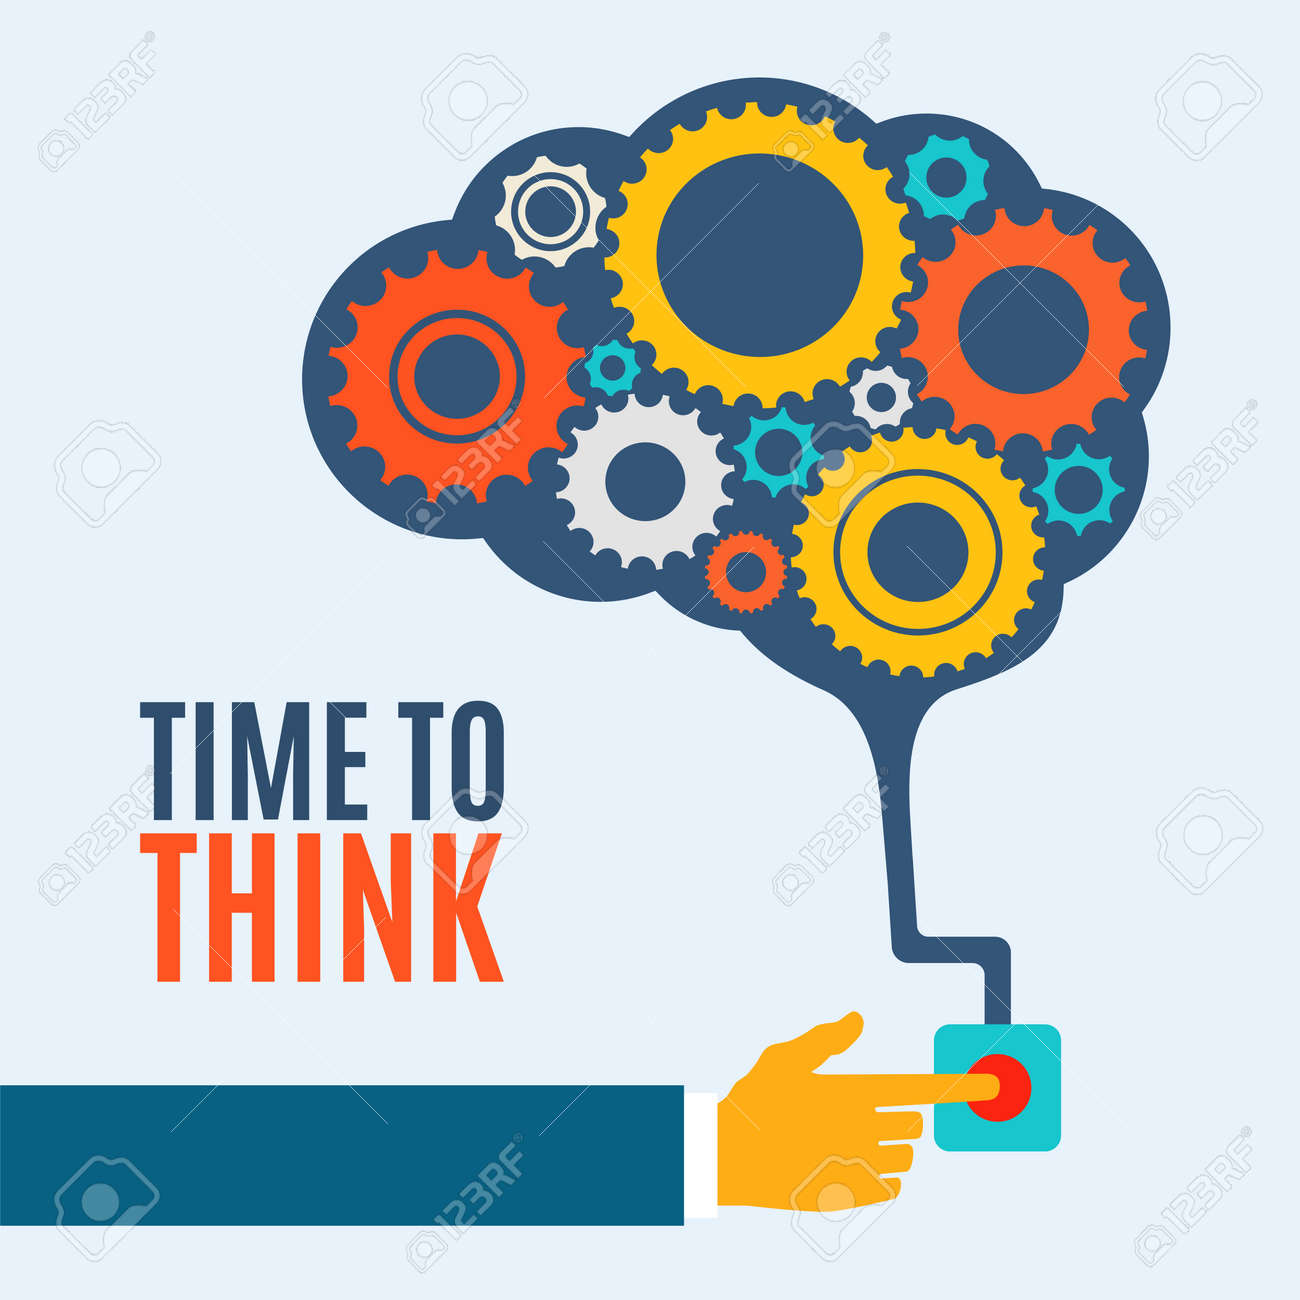 Time to think, creative brain idea concept, background illustration - 32559960